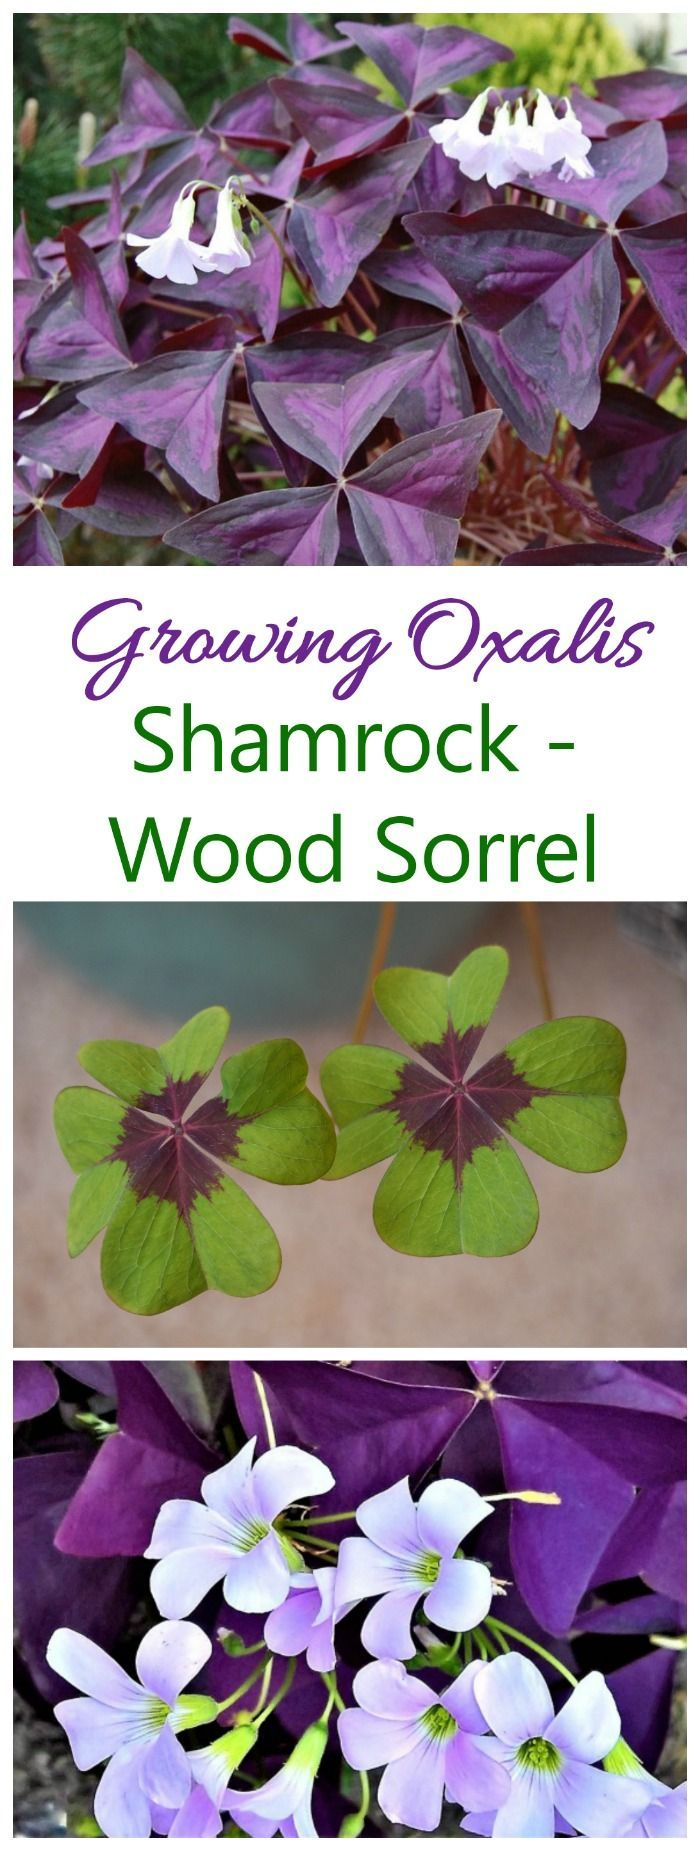 Growing oxalis outdoors or inside as a house plant is easy. #oxalis #woodsorrel #falsesharmrock